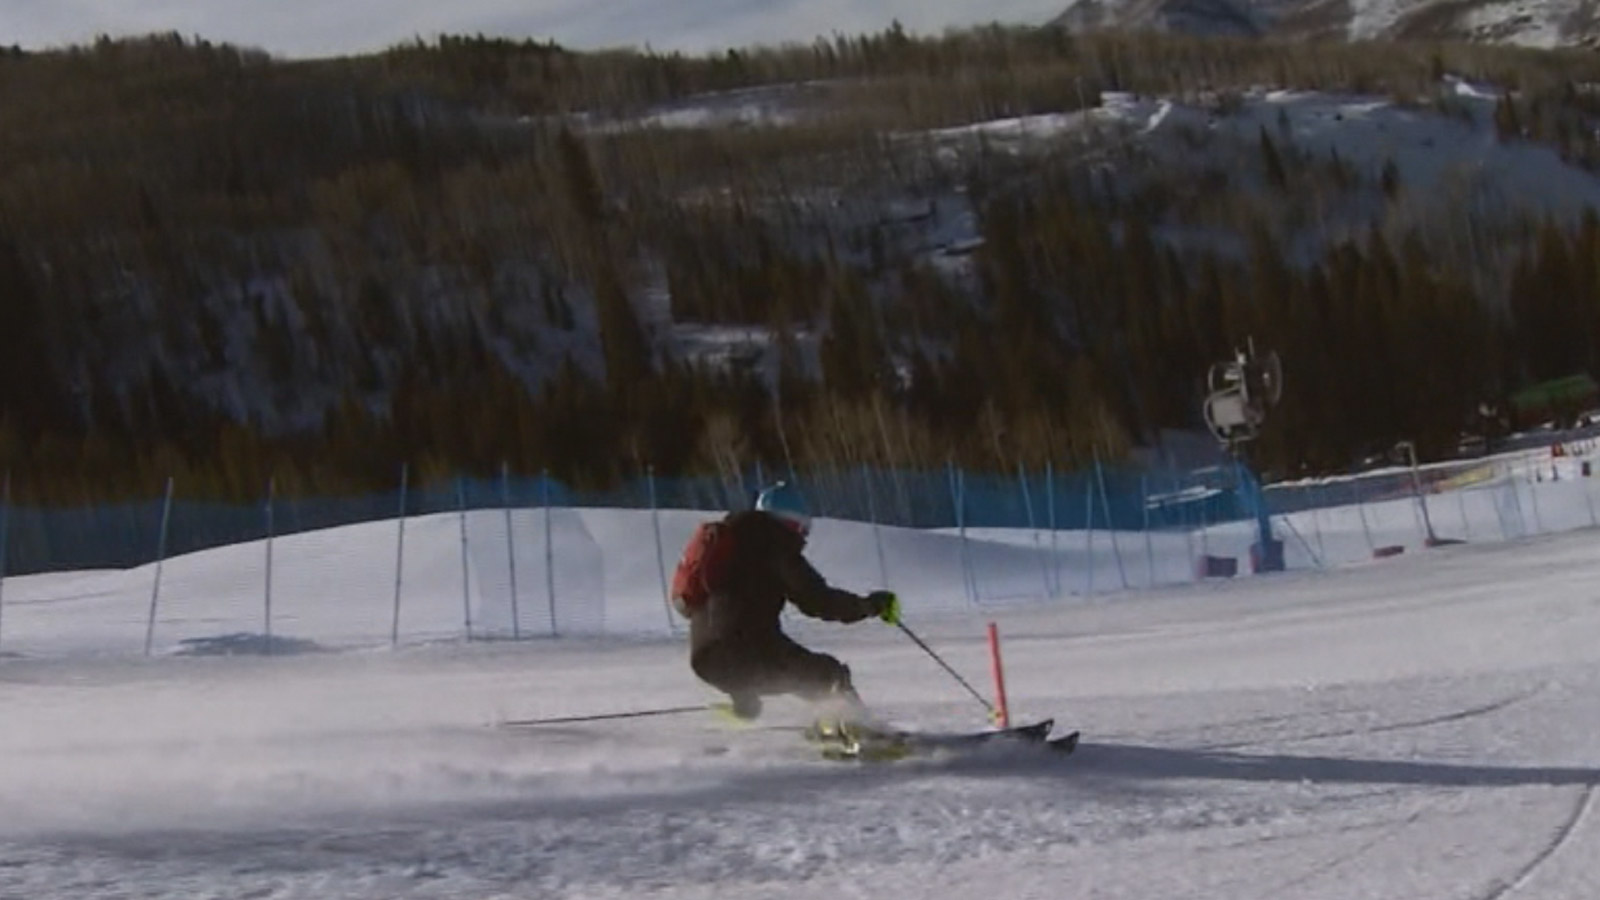 A skier study at Vail hopes to show dynamics of sport (credit: CBS)